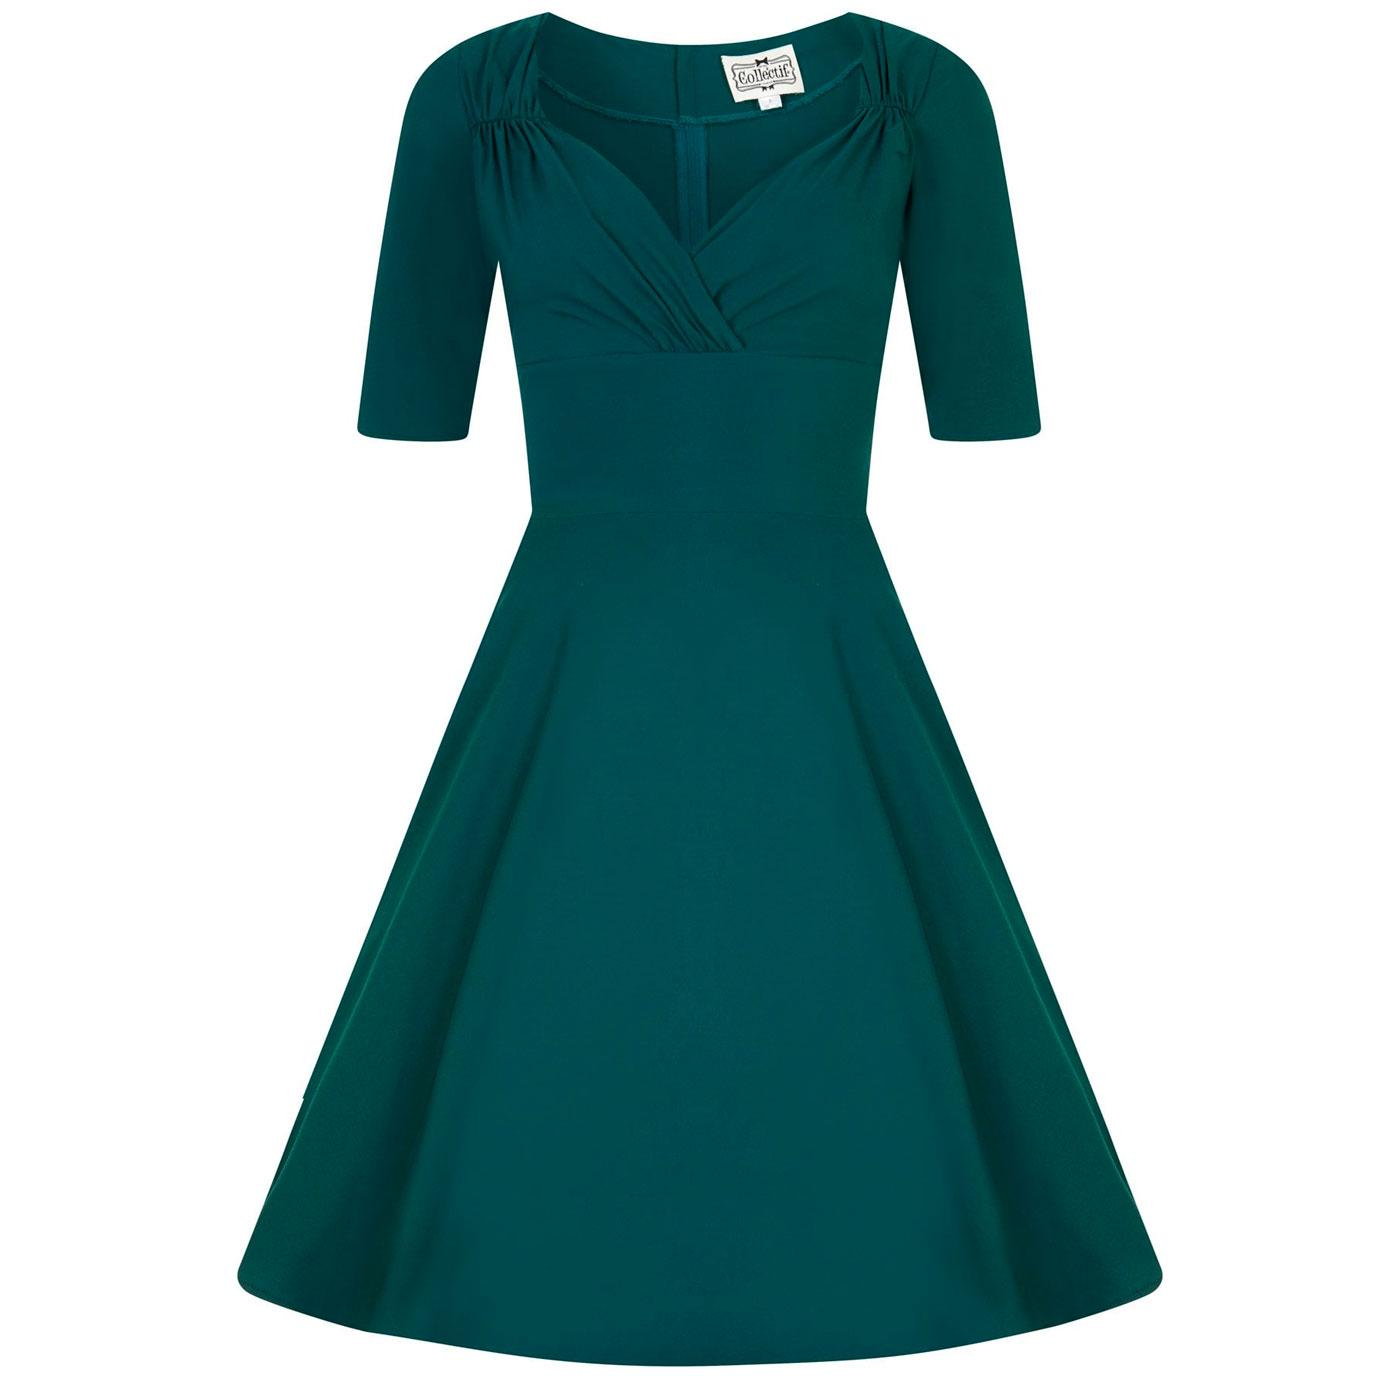 Trixie COLLECTIF Retro 50s Vintage Doll Dress Teal